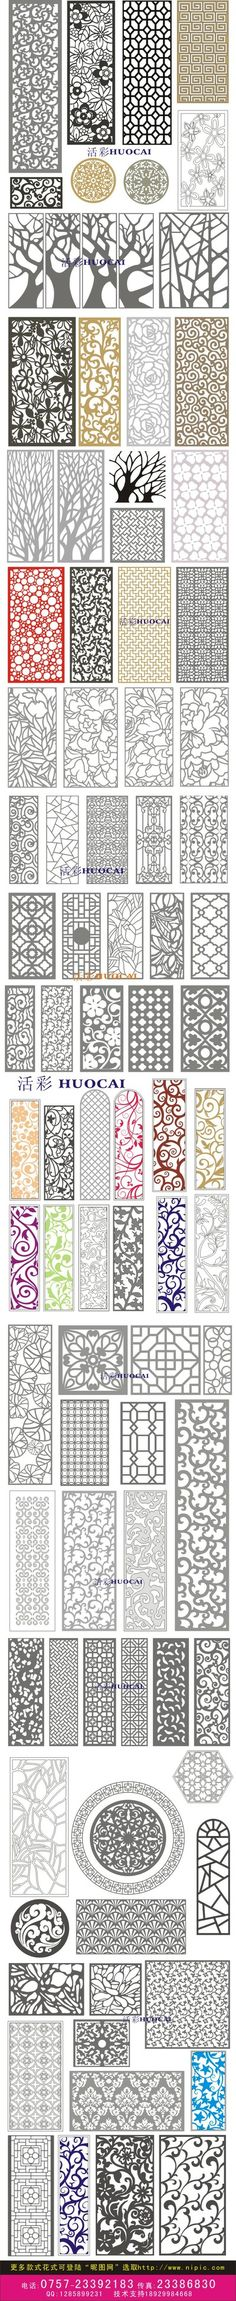 Various Templates- Patterns to use for Paper Cutting, Stencil, Murals, Card making. Diy And Crafts, Arts And Crafts, Paper Crafts, Cnc, Stencils, Stencil Patterns, Paper Cutting Patterns, Fun Patterns, Stencil Designs